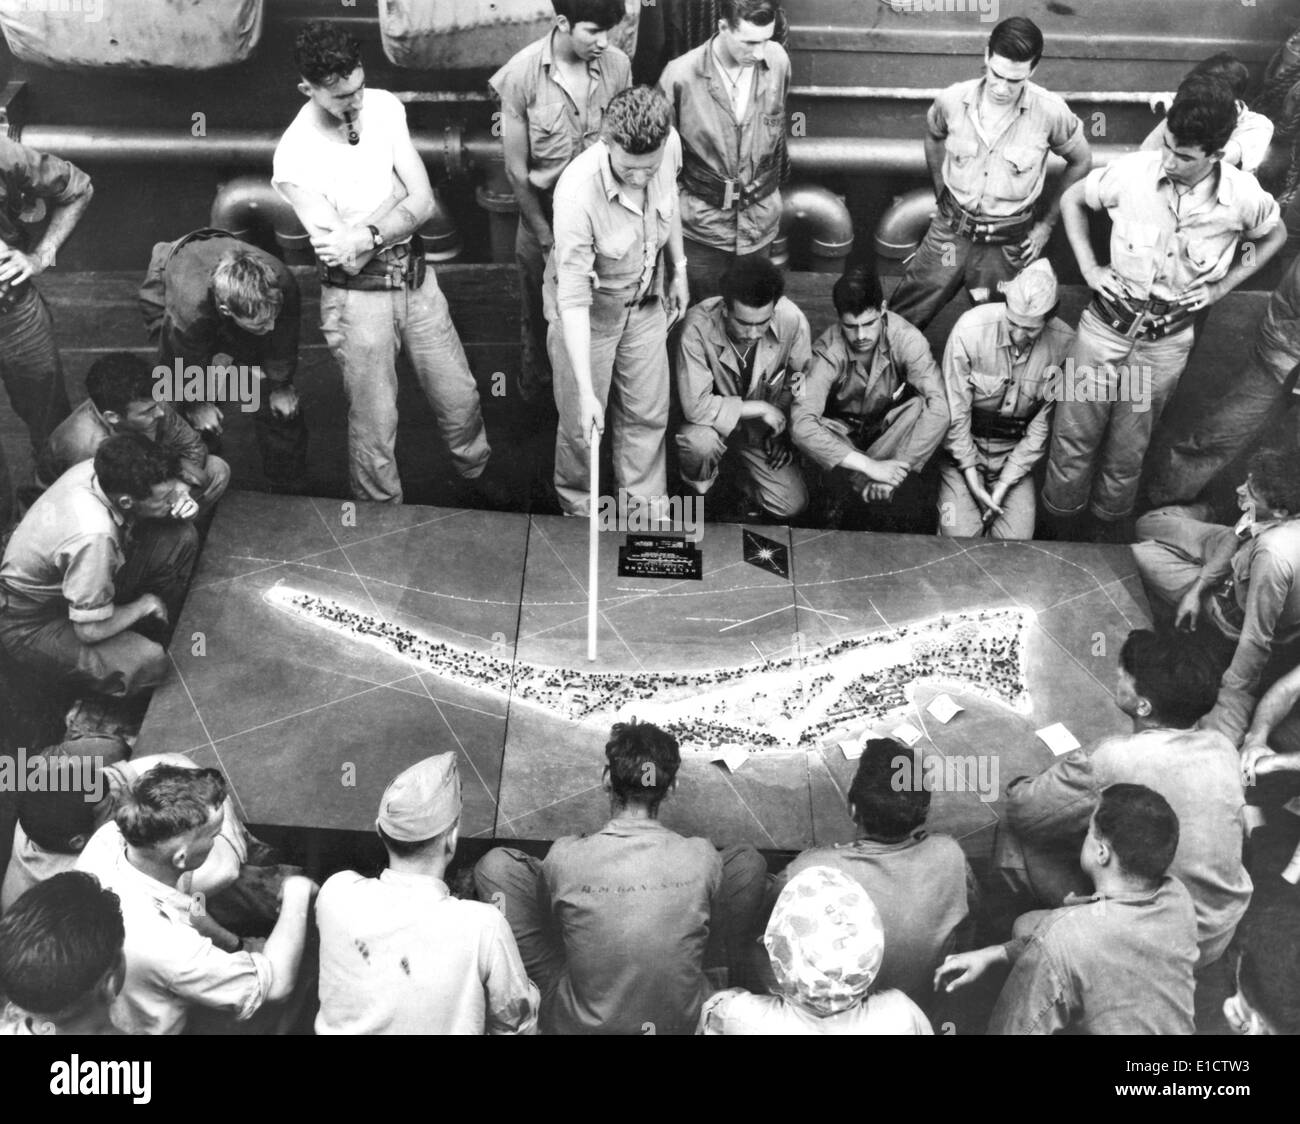 U.S. Marines study a relief model of Tarawa Atoll on a Navy transport before the battle. Ca. Nov.16-19, 1944, World War 2. - Stock Image